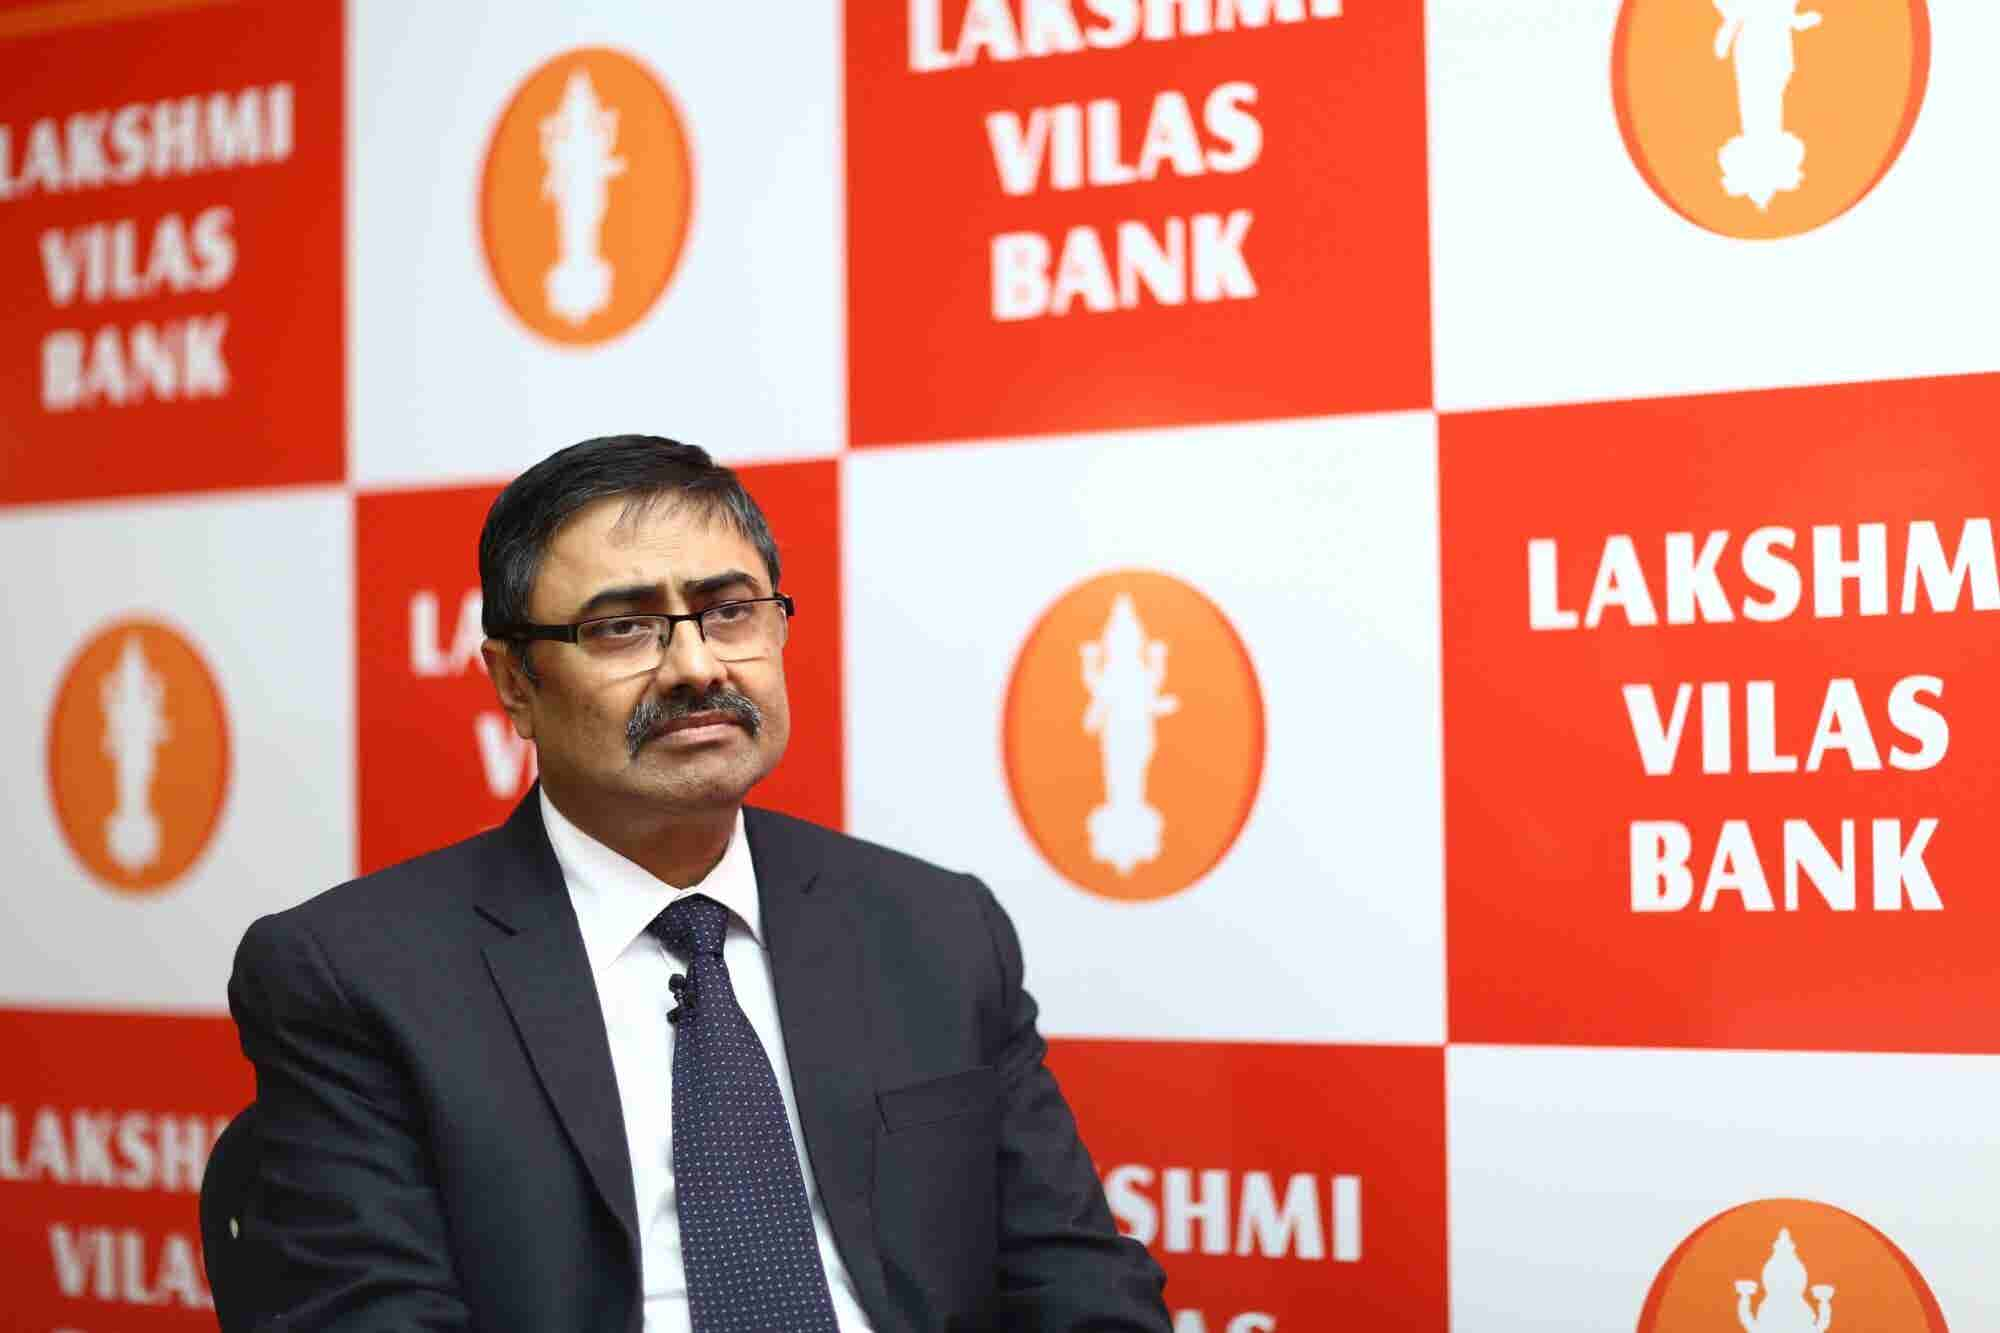 Lakshmi Vilas Bank's MD Shares Why Bankers Should Take Lessons from New Age Fintech Lenders